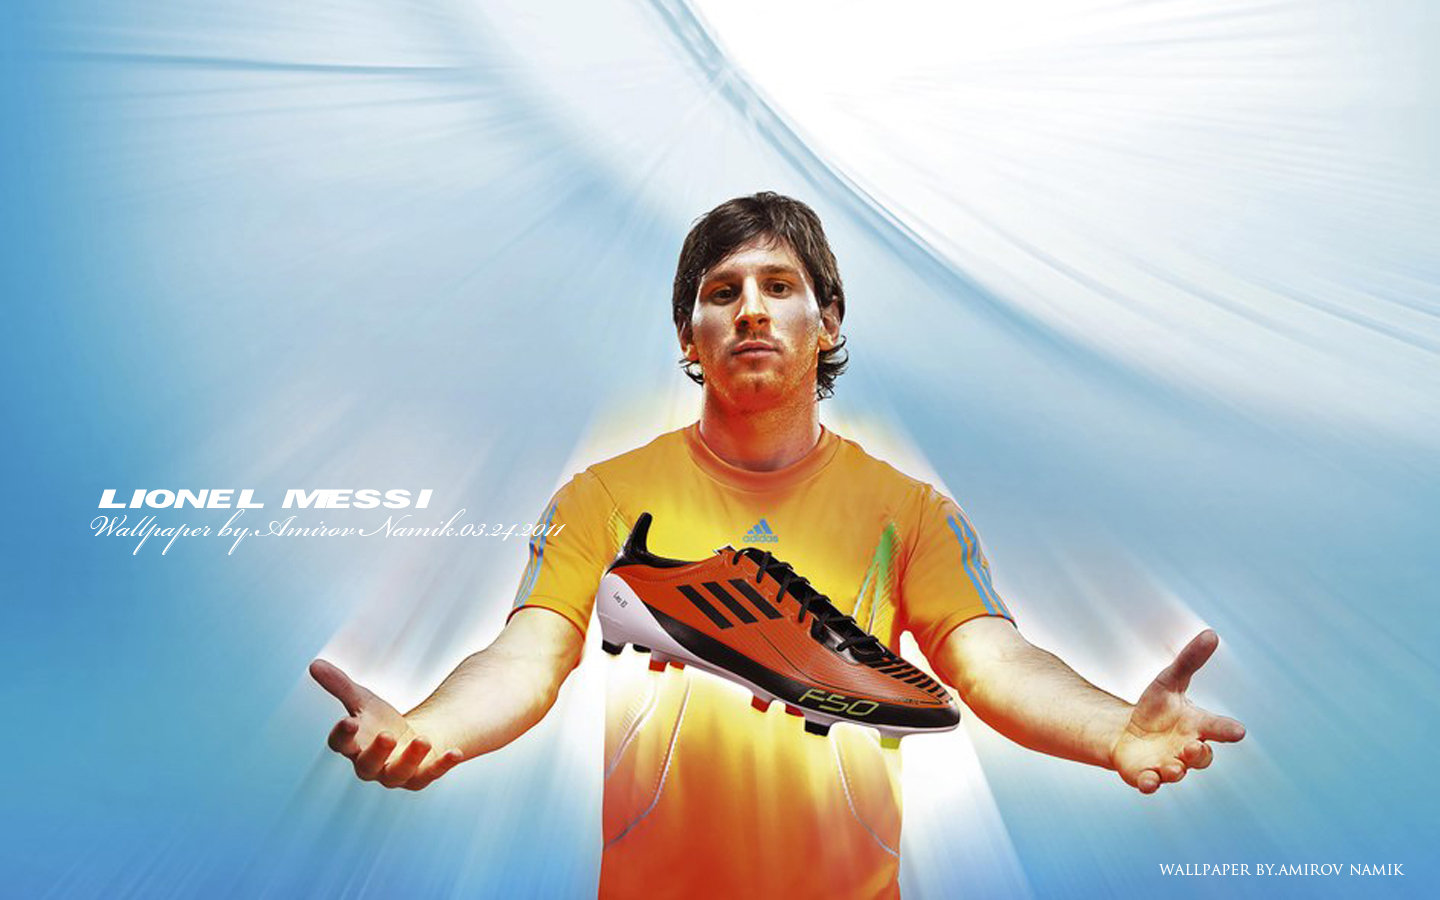 Lionel Messi Adidas , HD Wallpaper & Backgrounds